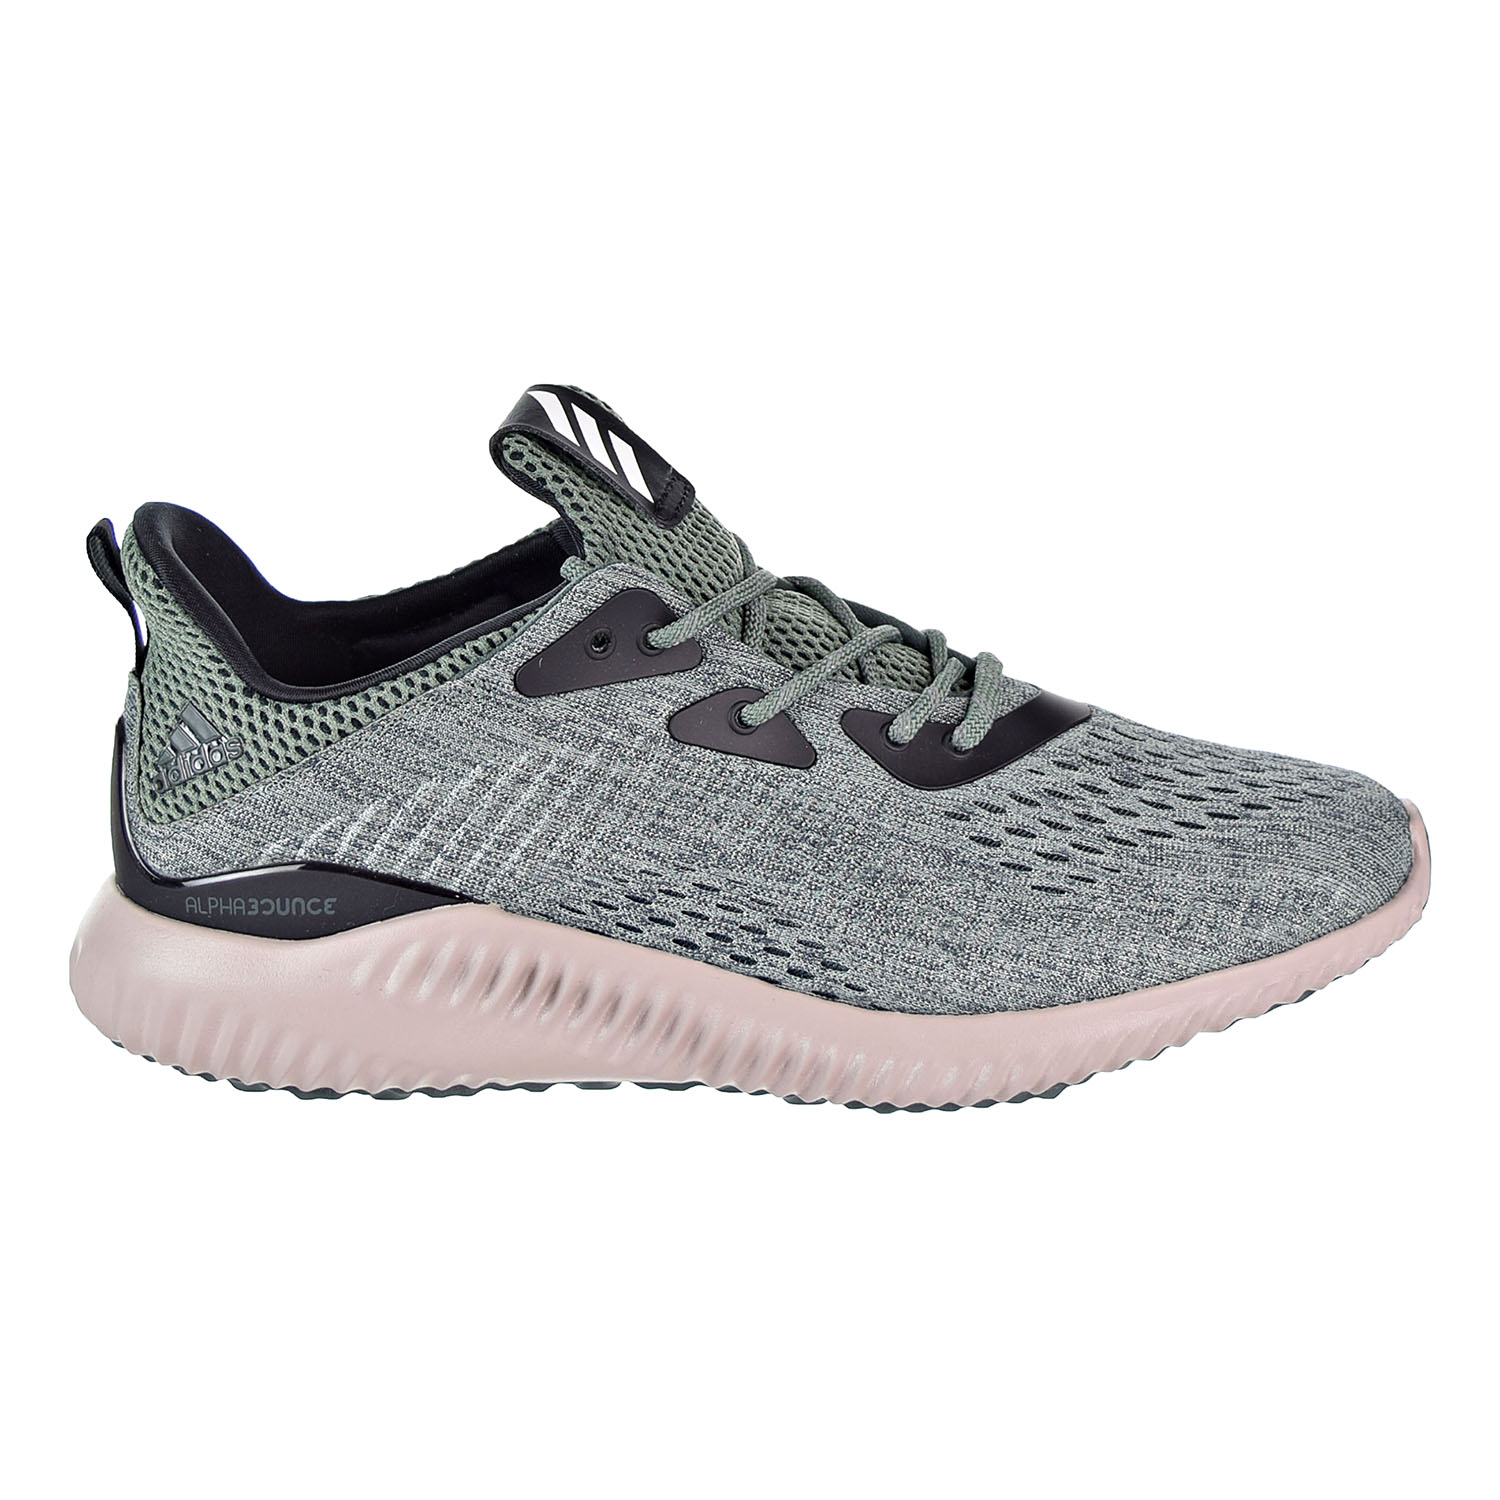 newest a0ace 4f78d Details about Adidas Alphabounce EM Mens Running Shoes GreenWhite BB9042